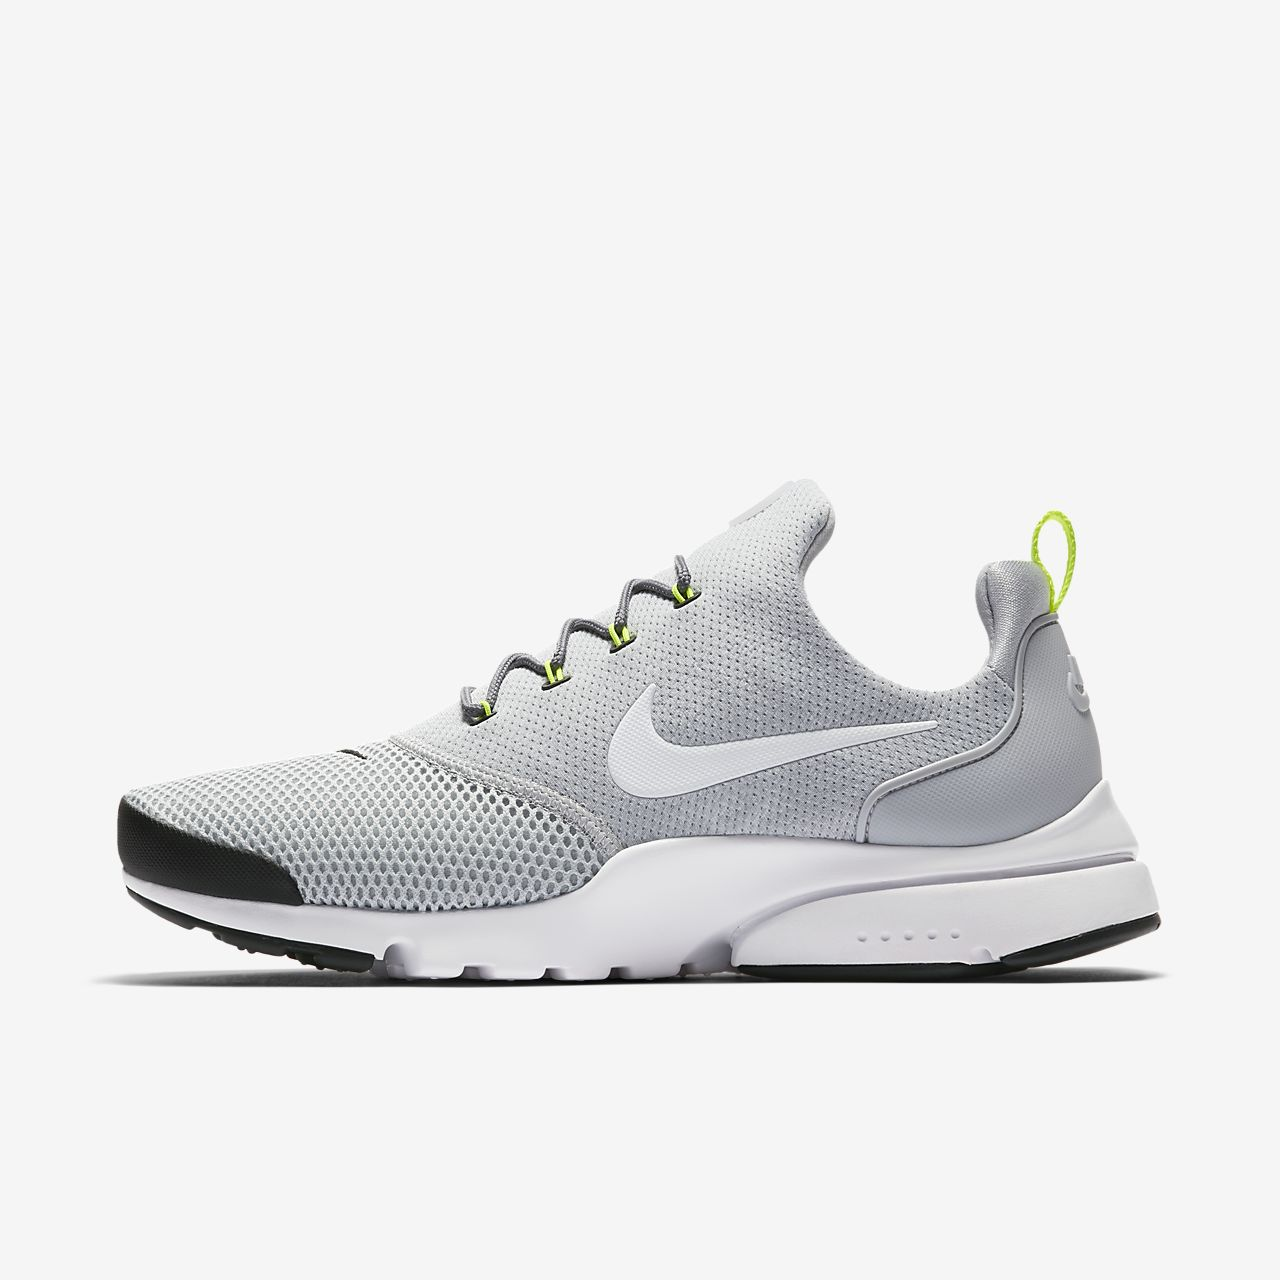 nike presto fly white mens